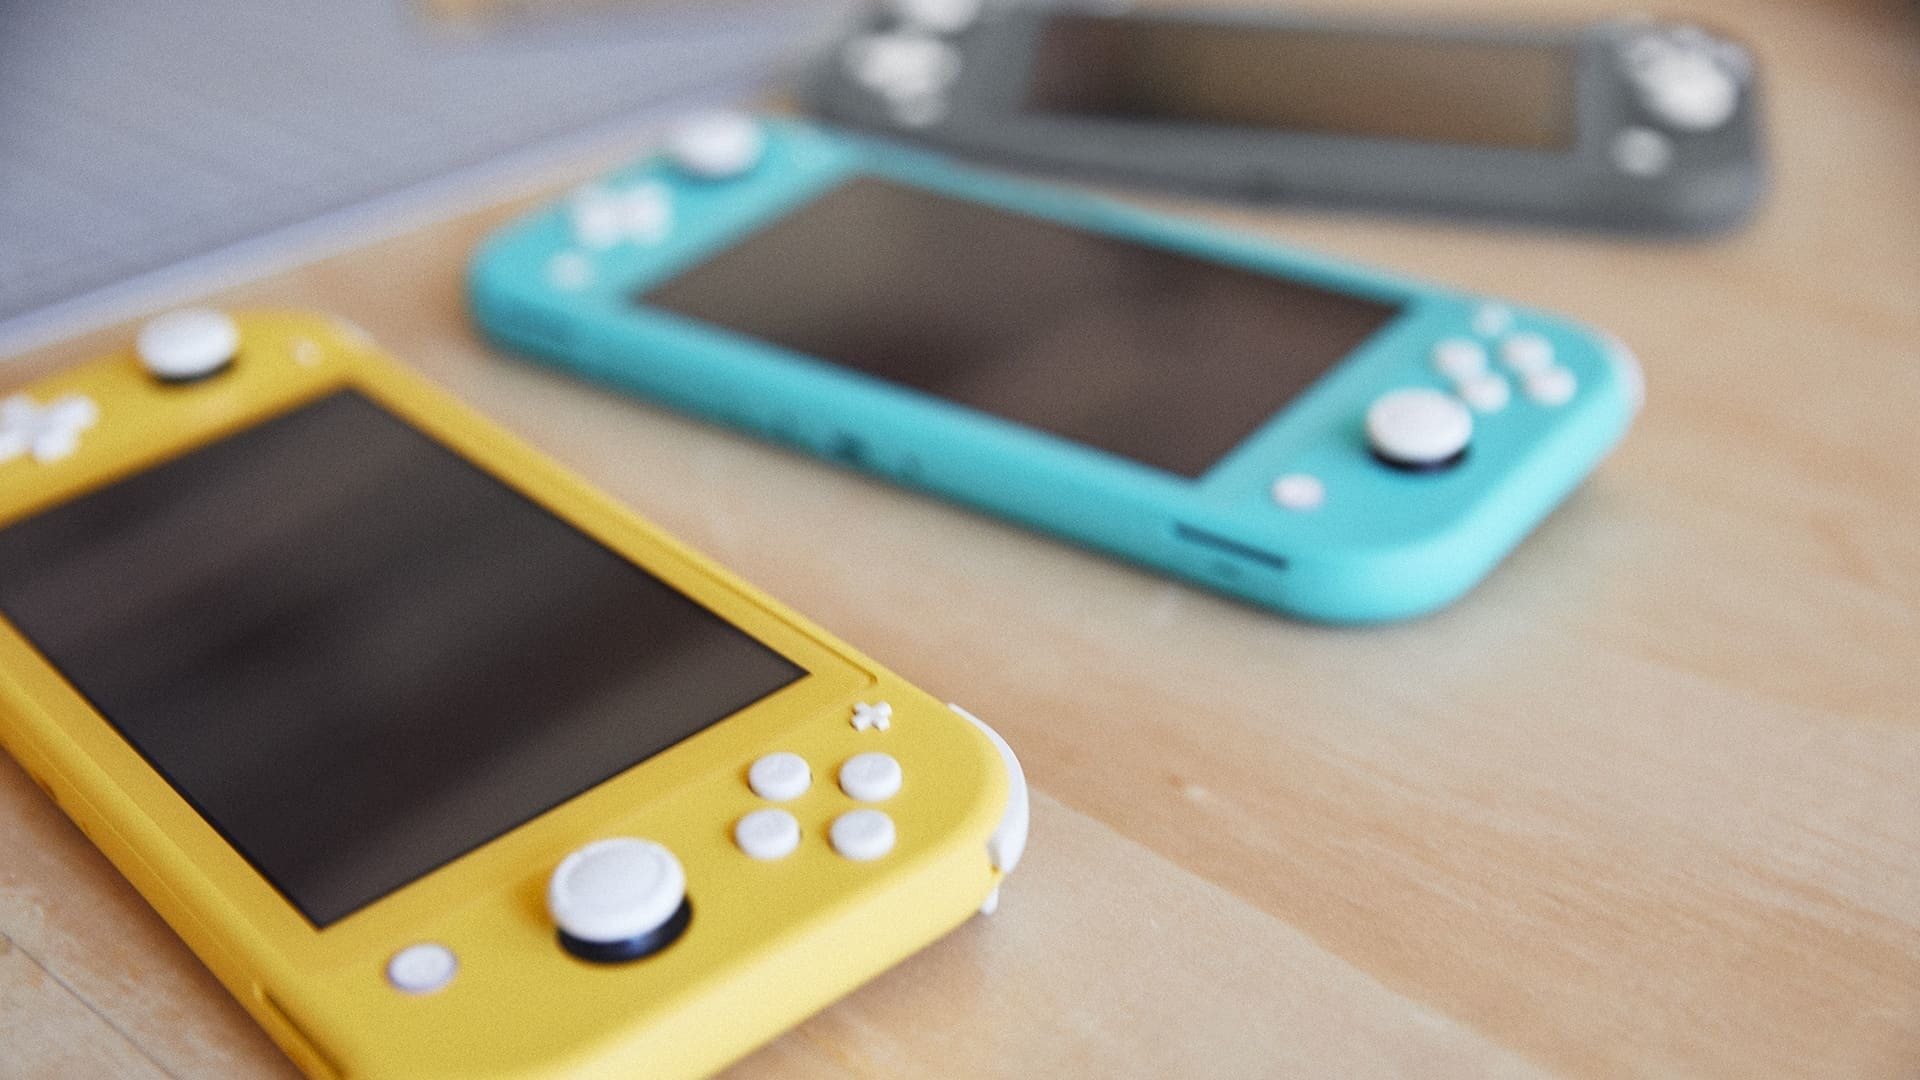 Nintendo Is Releasing The $200 Switch Lite Console in September